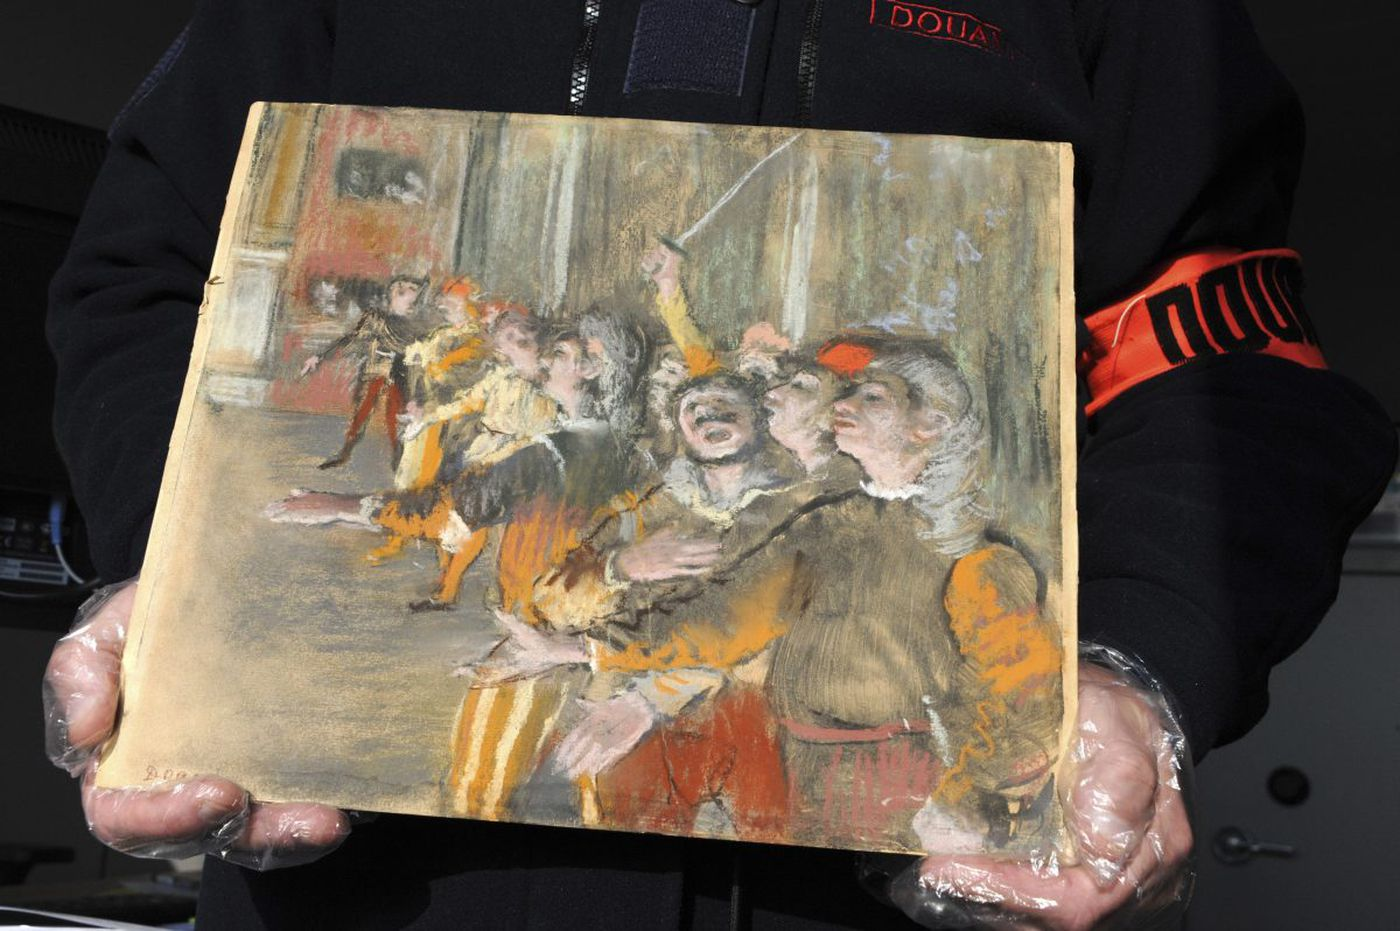 French customs stumbled upon a stolen $1 million painting in an unlikely place